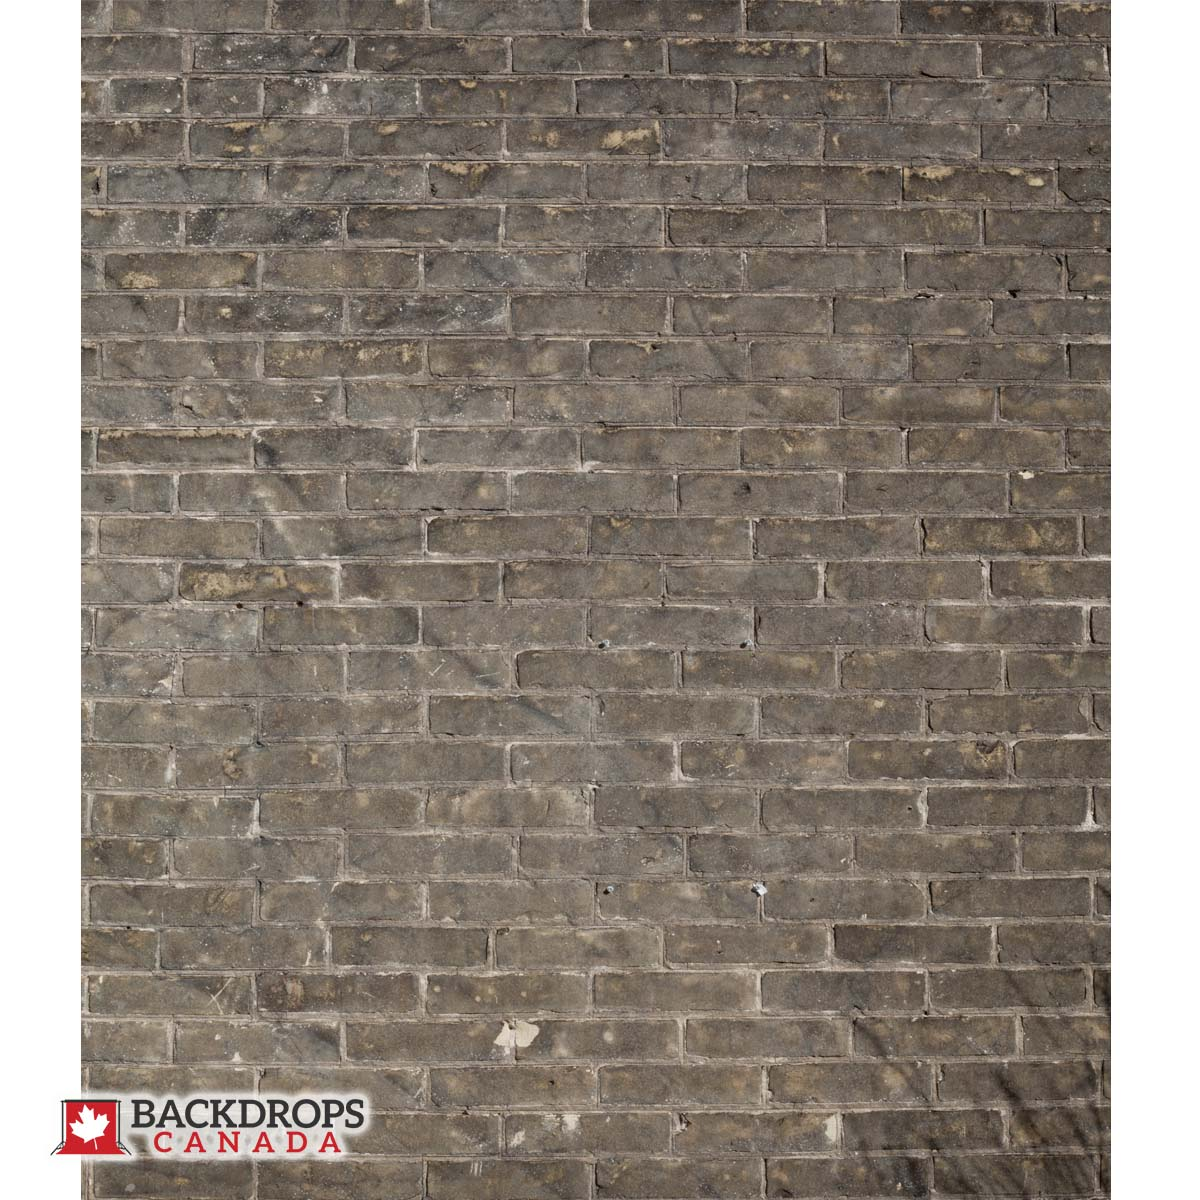 Grungy Brown Brick Photography Backdrop